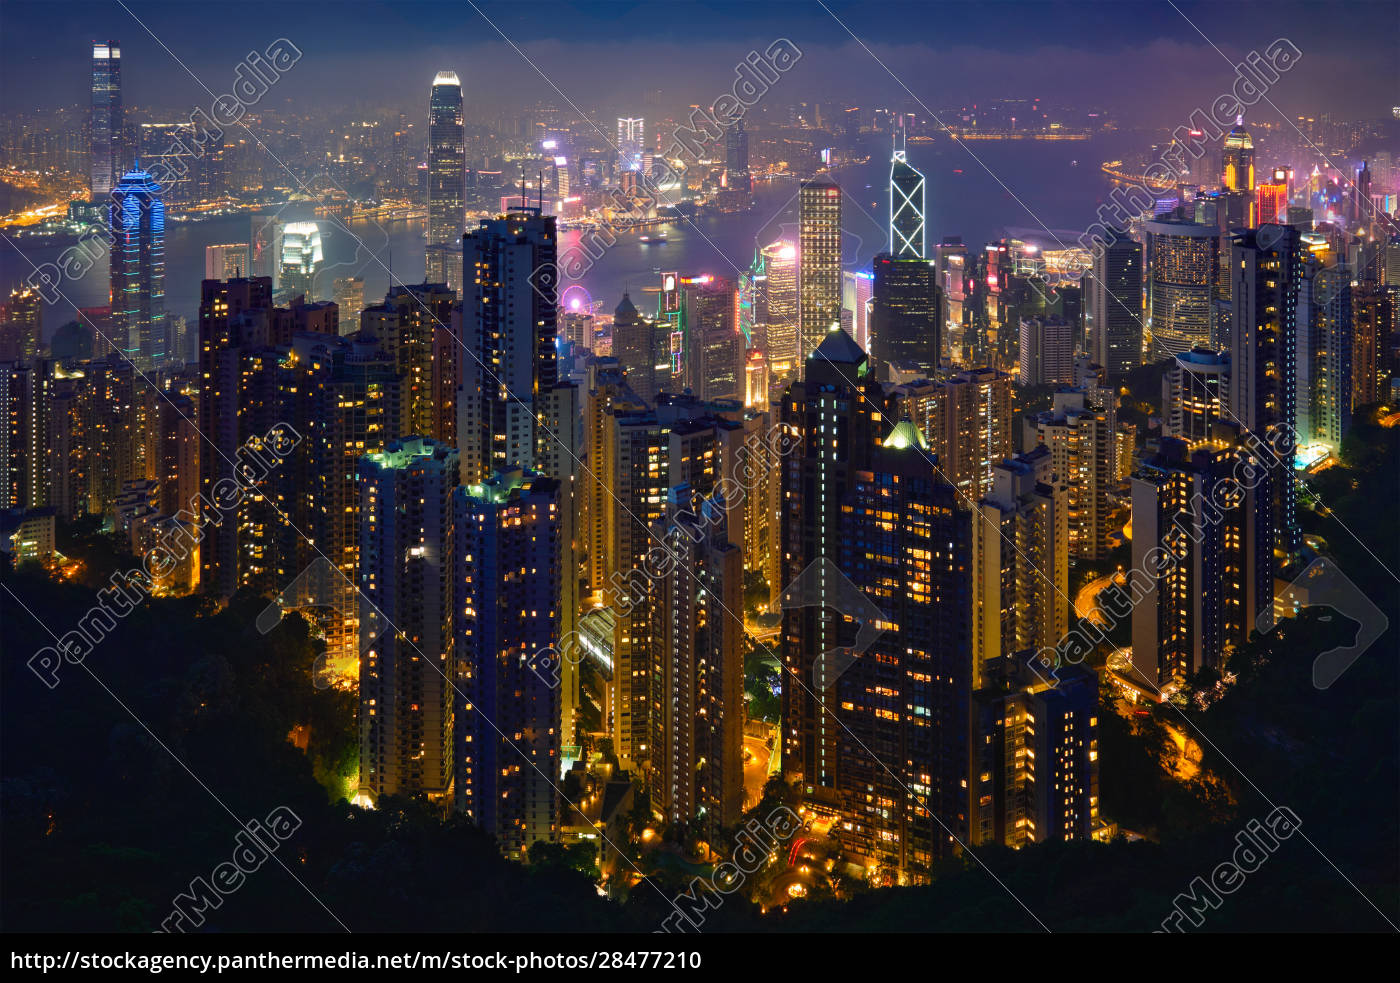 hong, kong, skyscrapers, skyline, cityscape, view - 28477210